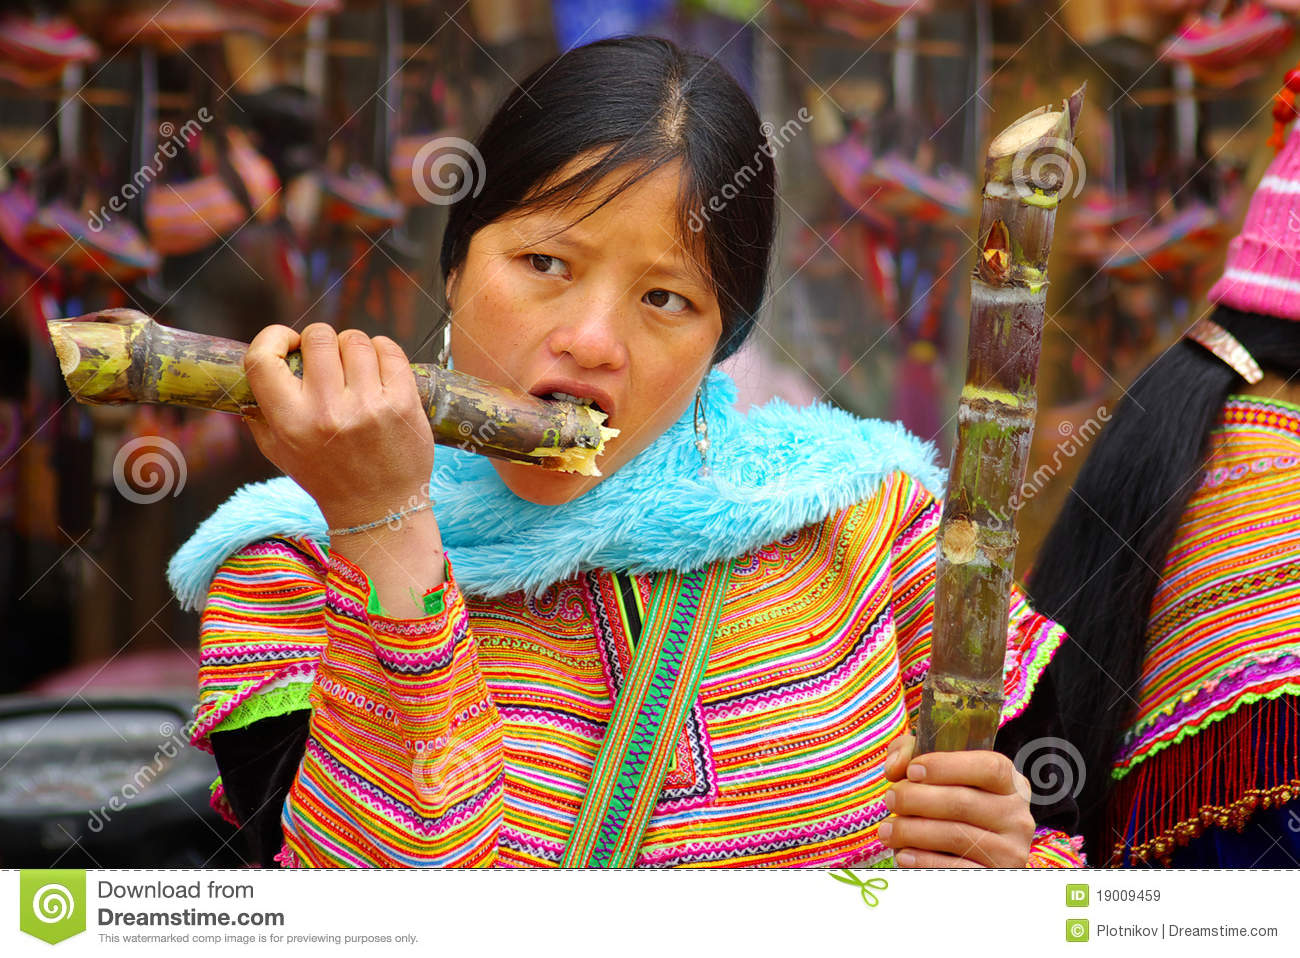 The Young Woman Eats A Sugar Cane Editorial Stock Image ...